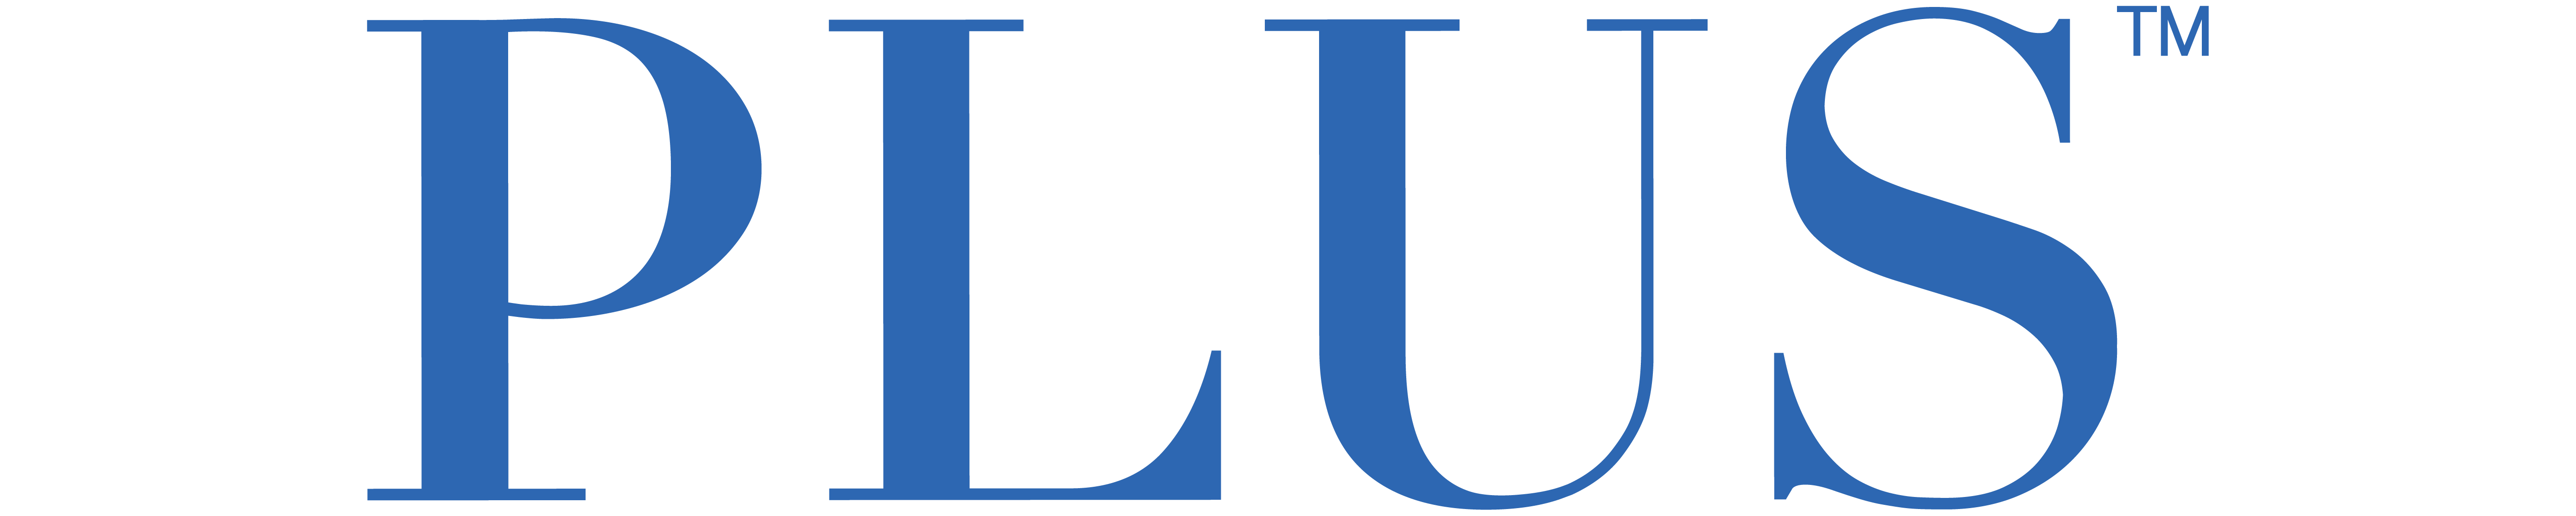 1_plus_logo_blue_400x80 (3).png